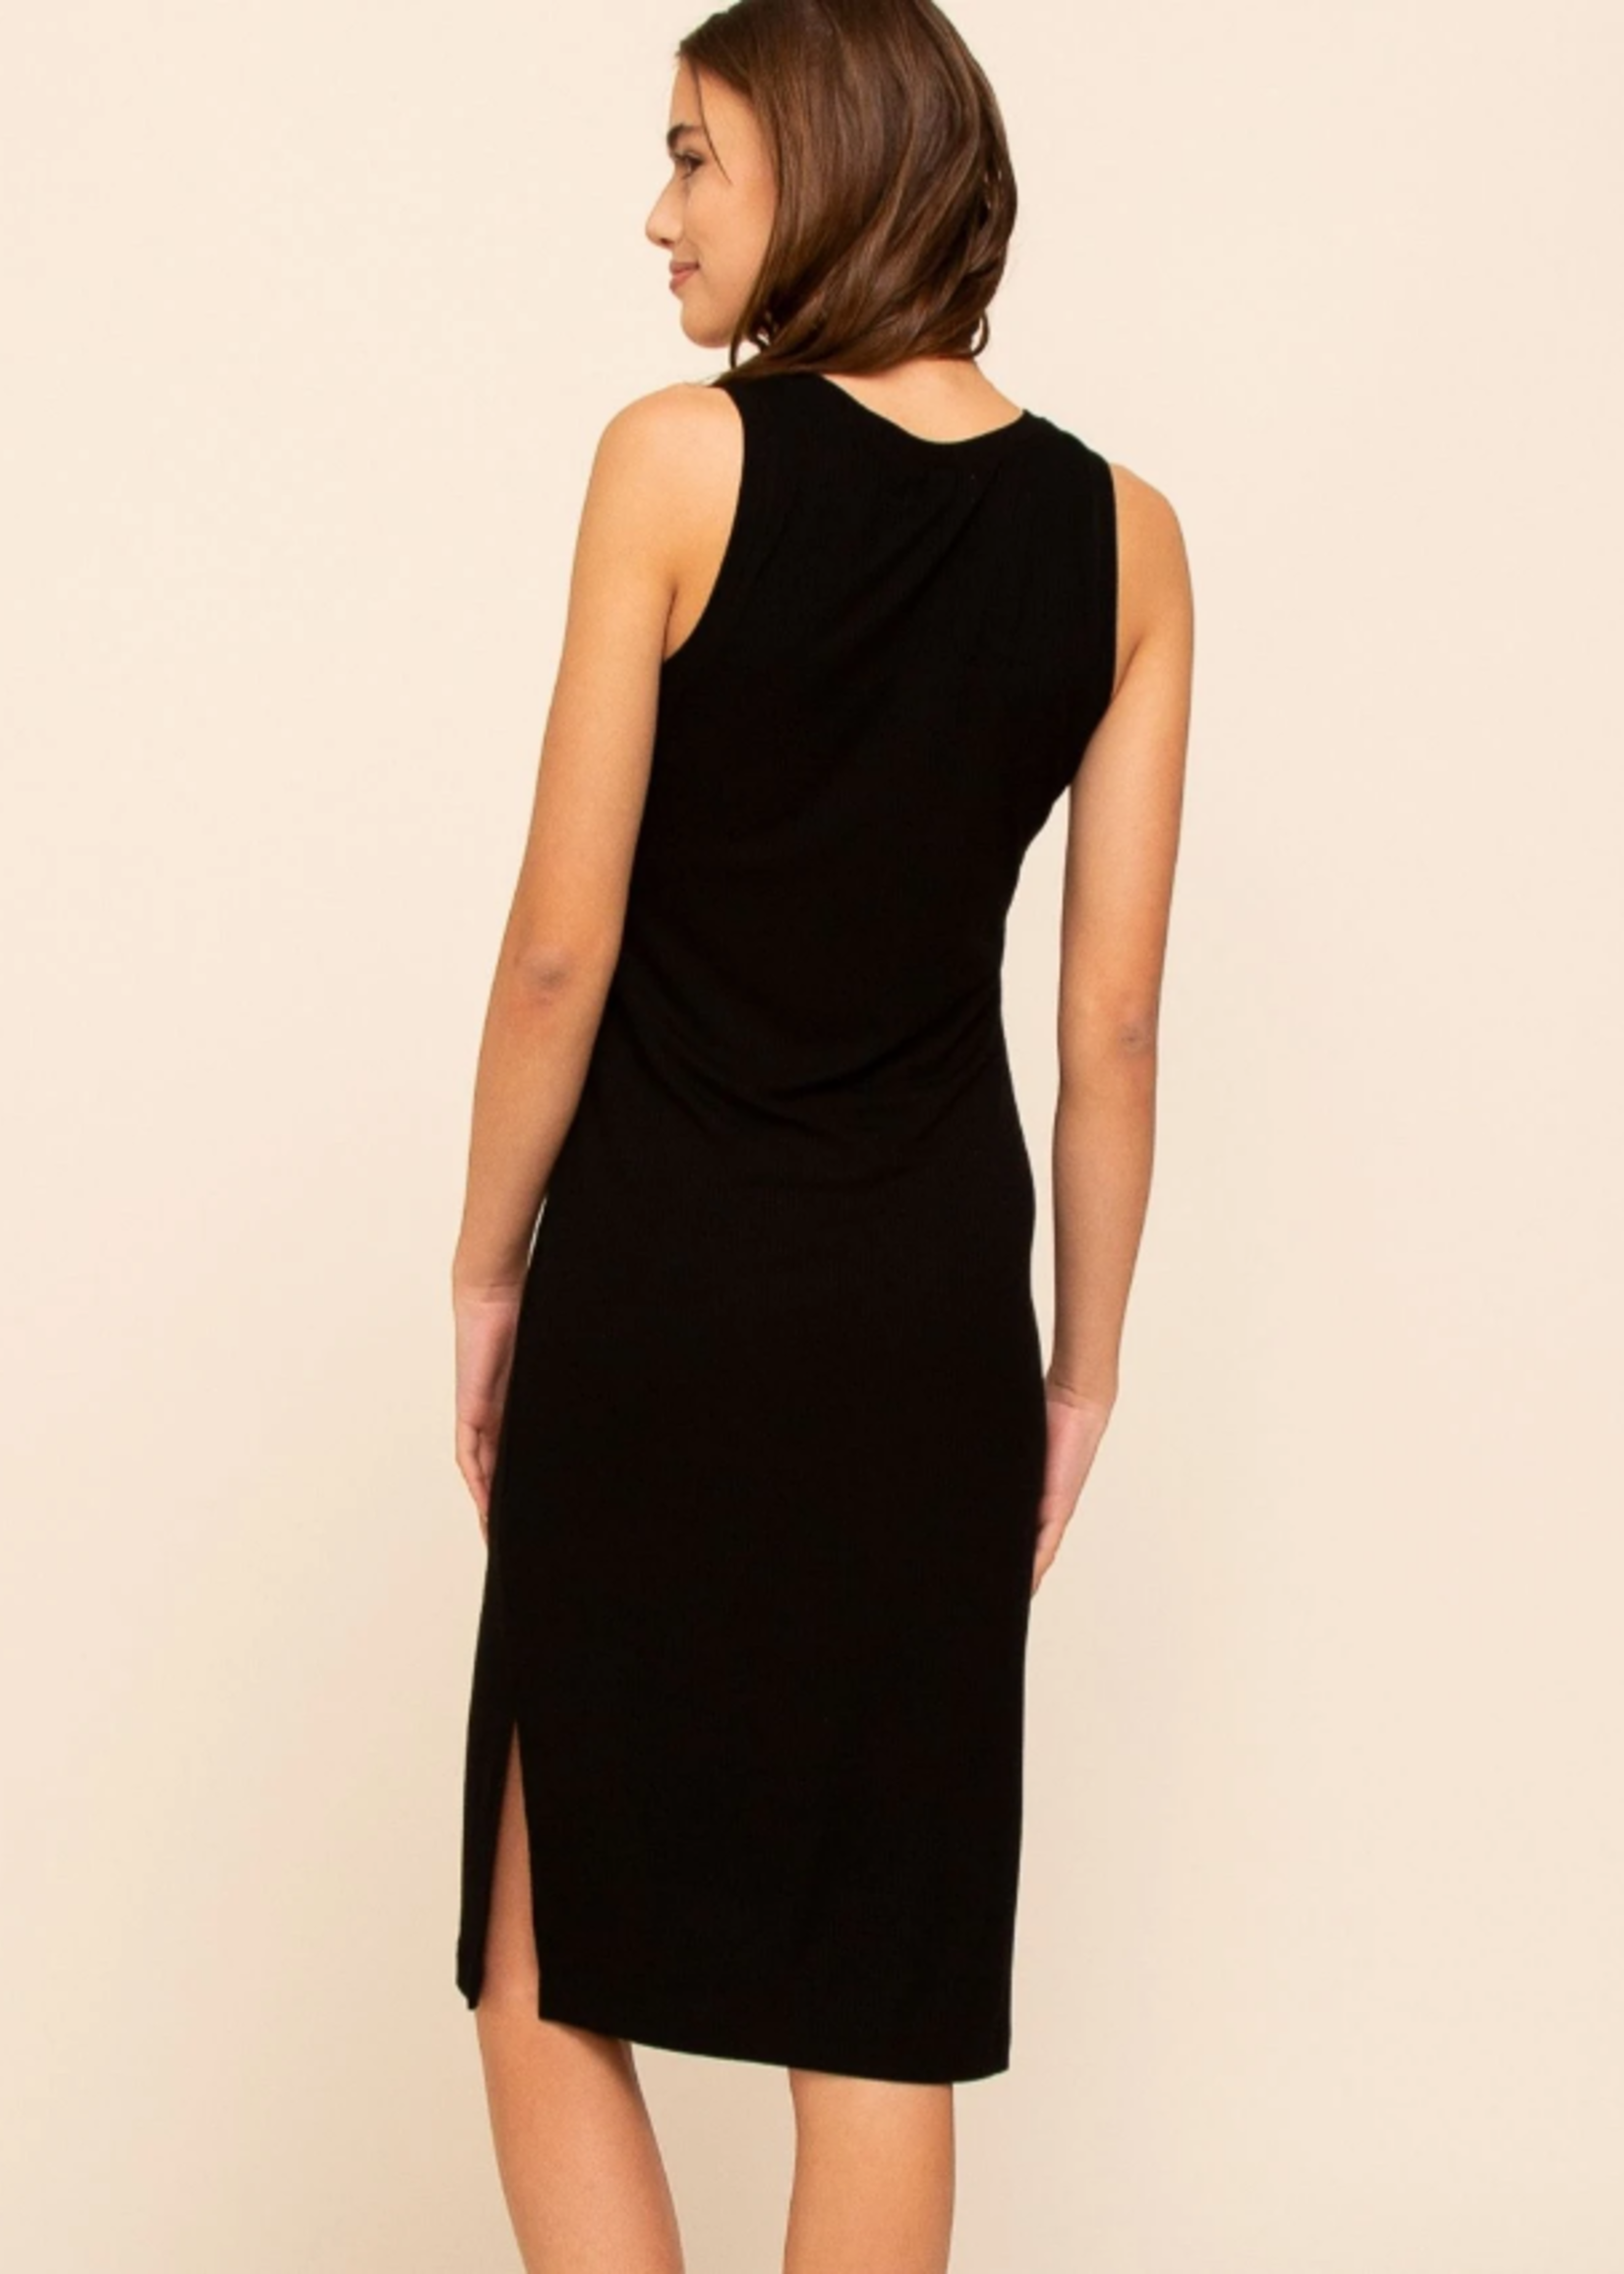 Thread & Supply Seaview Ribbed Dress - Black